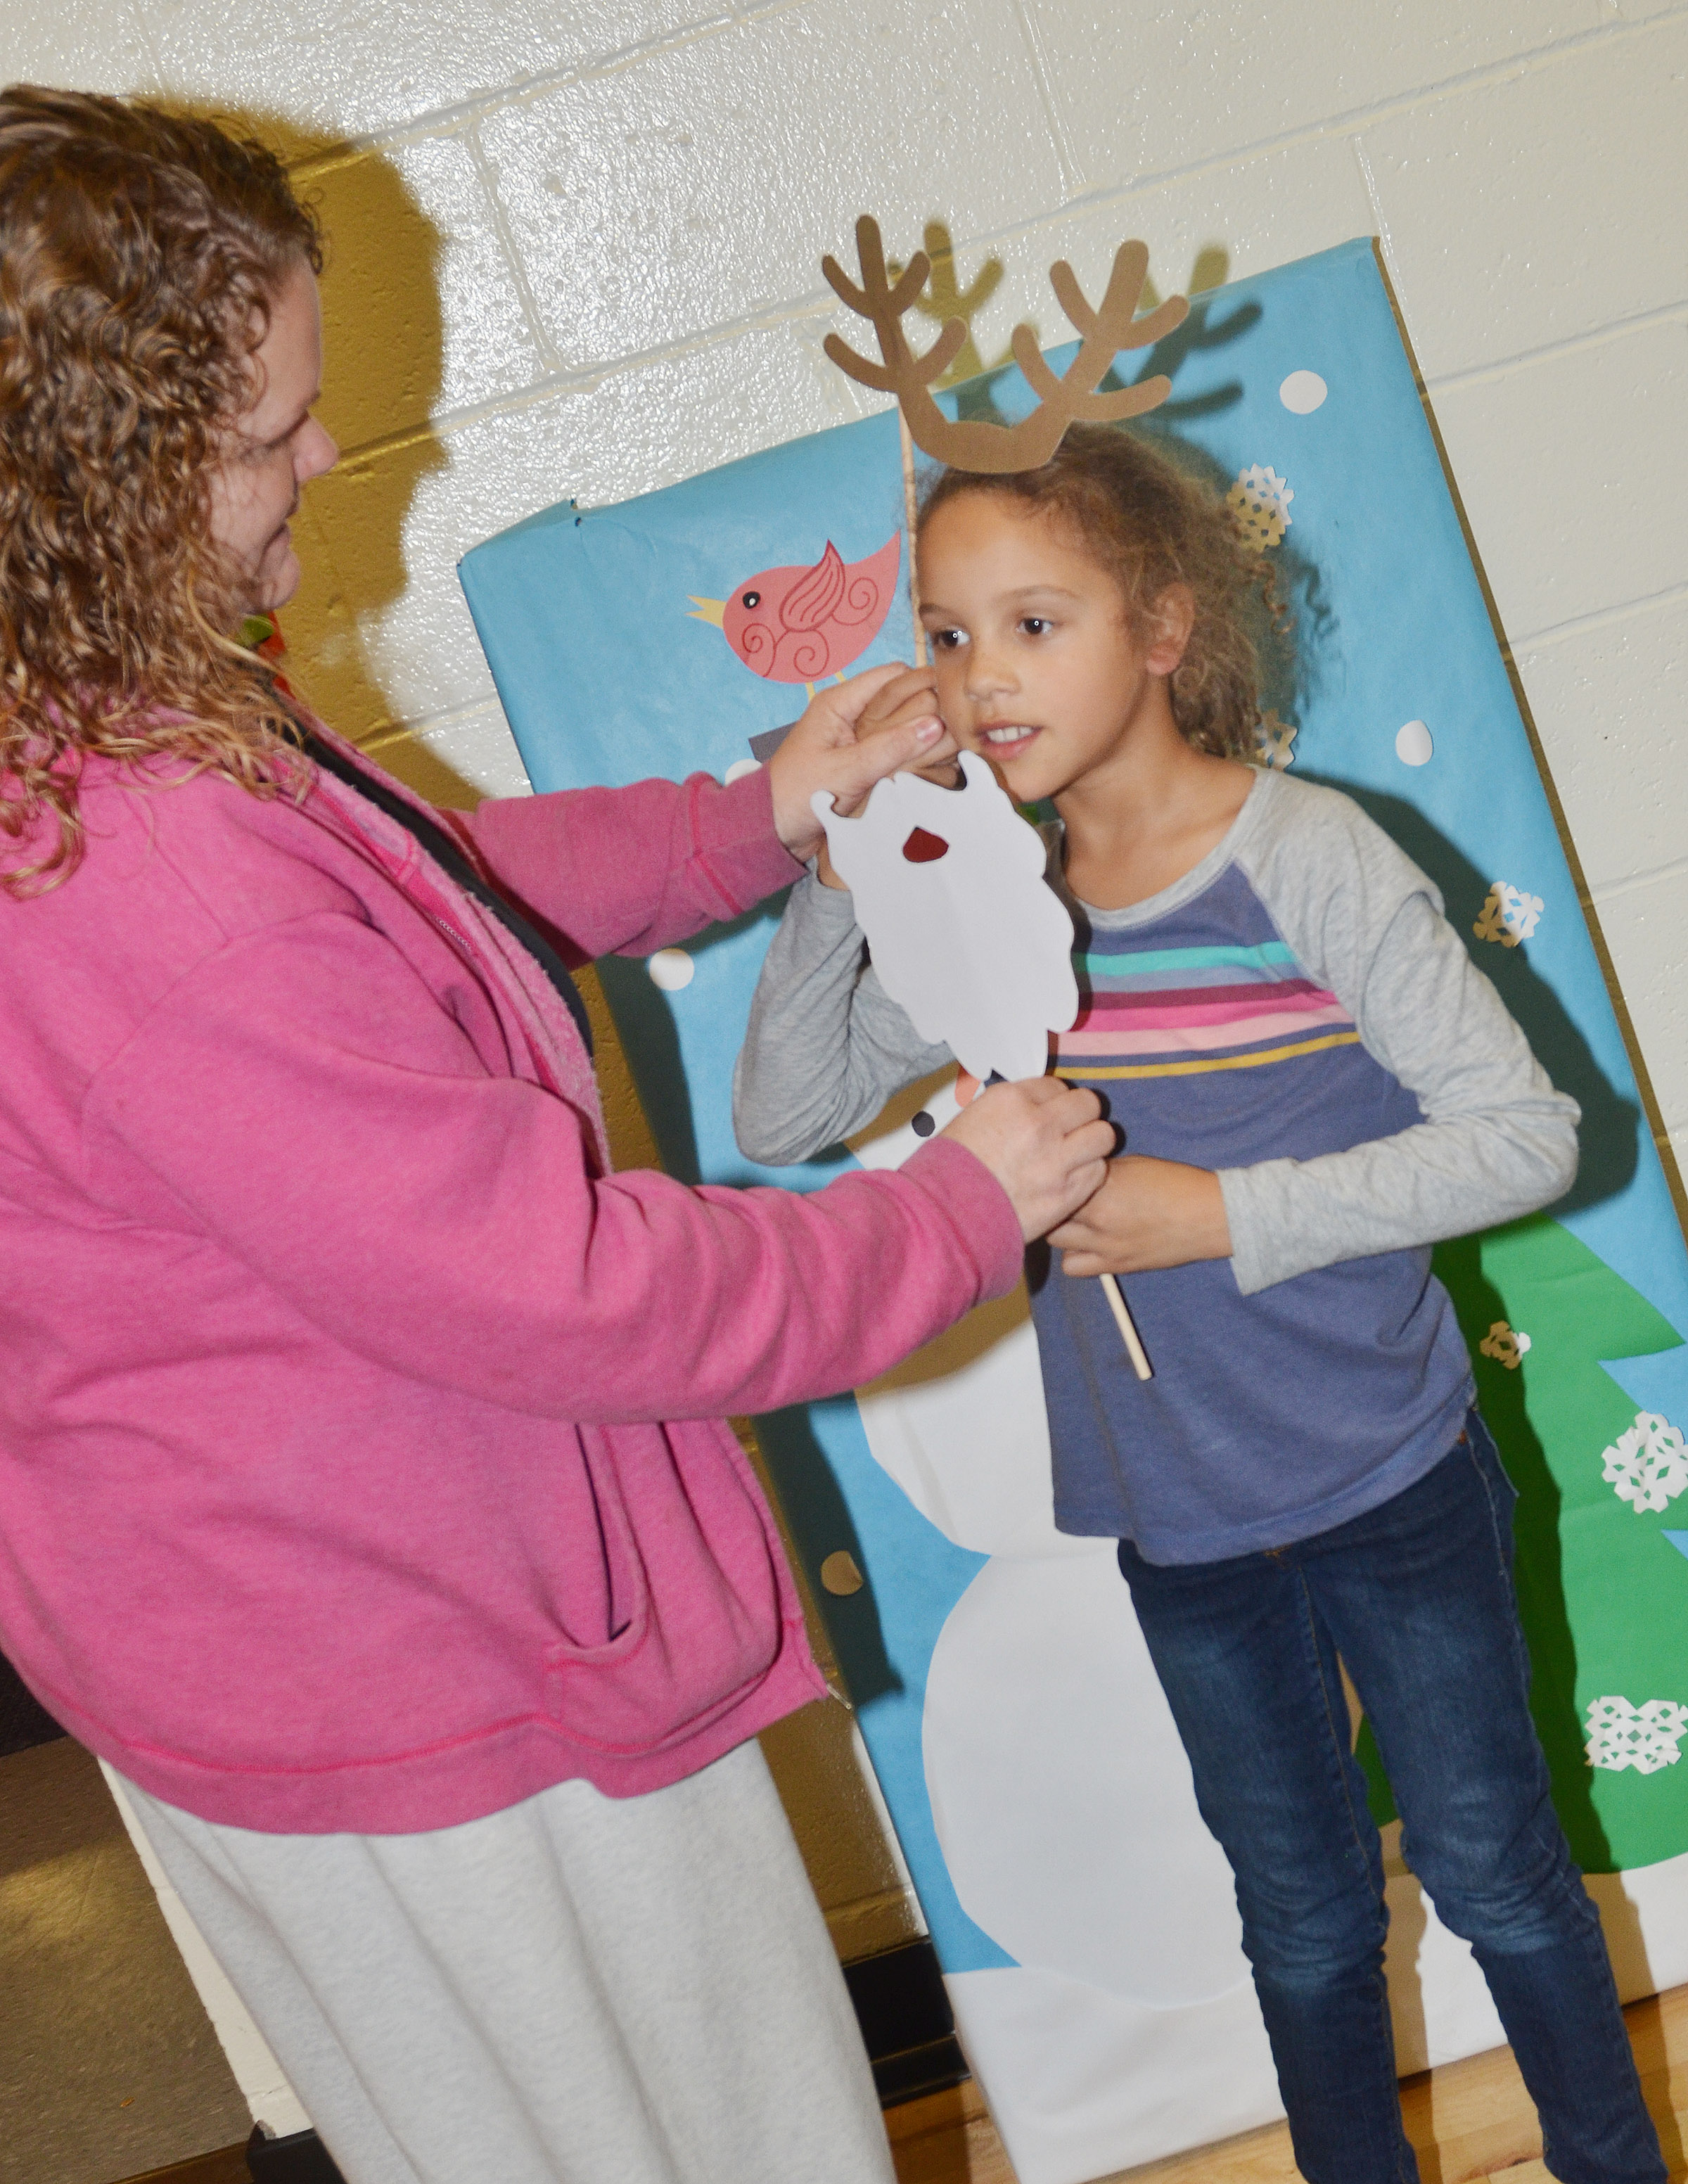 CES second-grader Keiava Thompson gets ready to pose for a photo, with some help from her mother, Tammy Pittman.